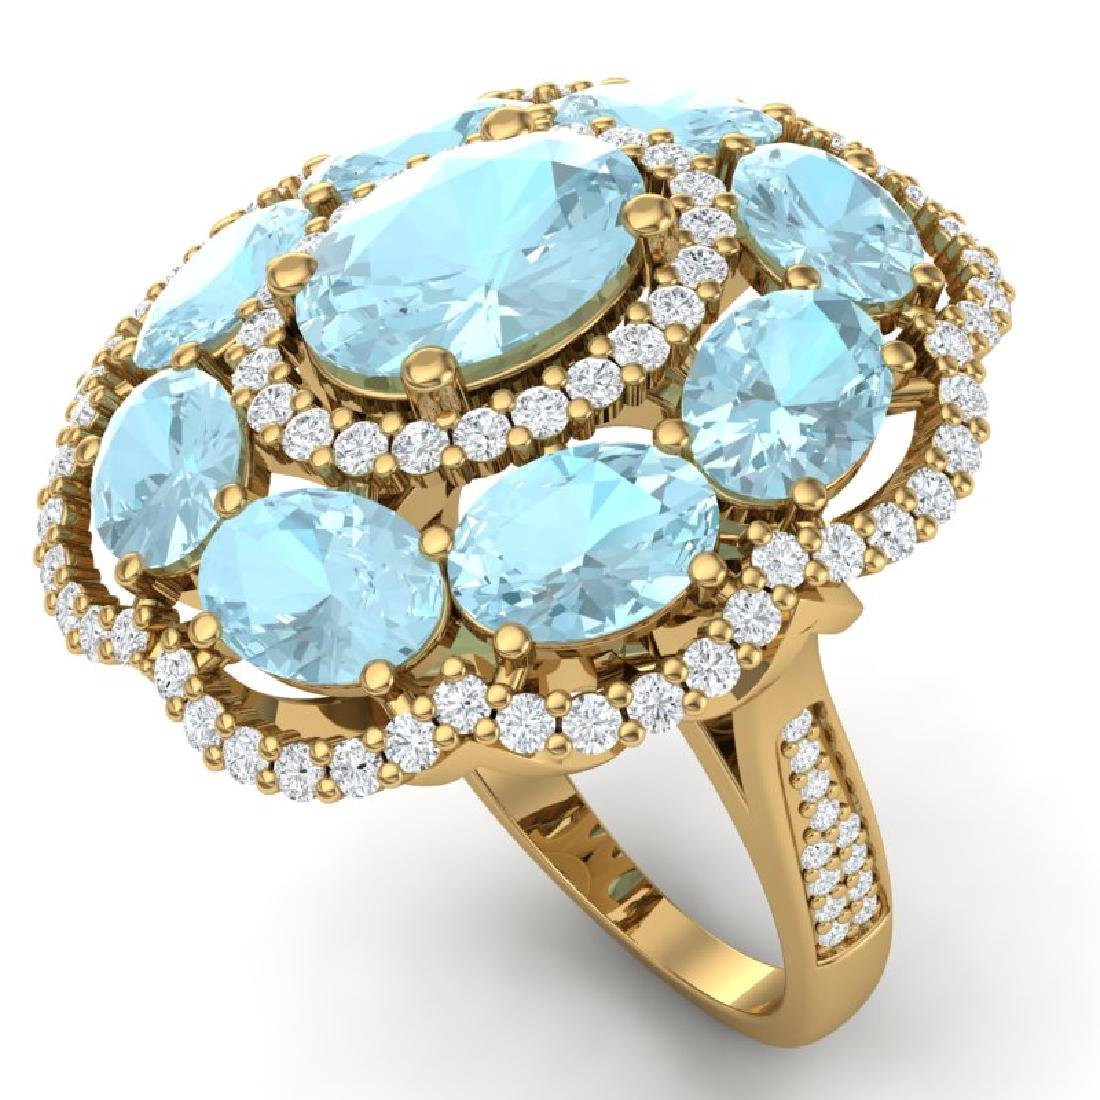 14.89 CTW Royalty Sky Topaz & VS Diamond Ring 18K